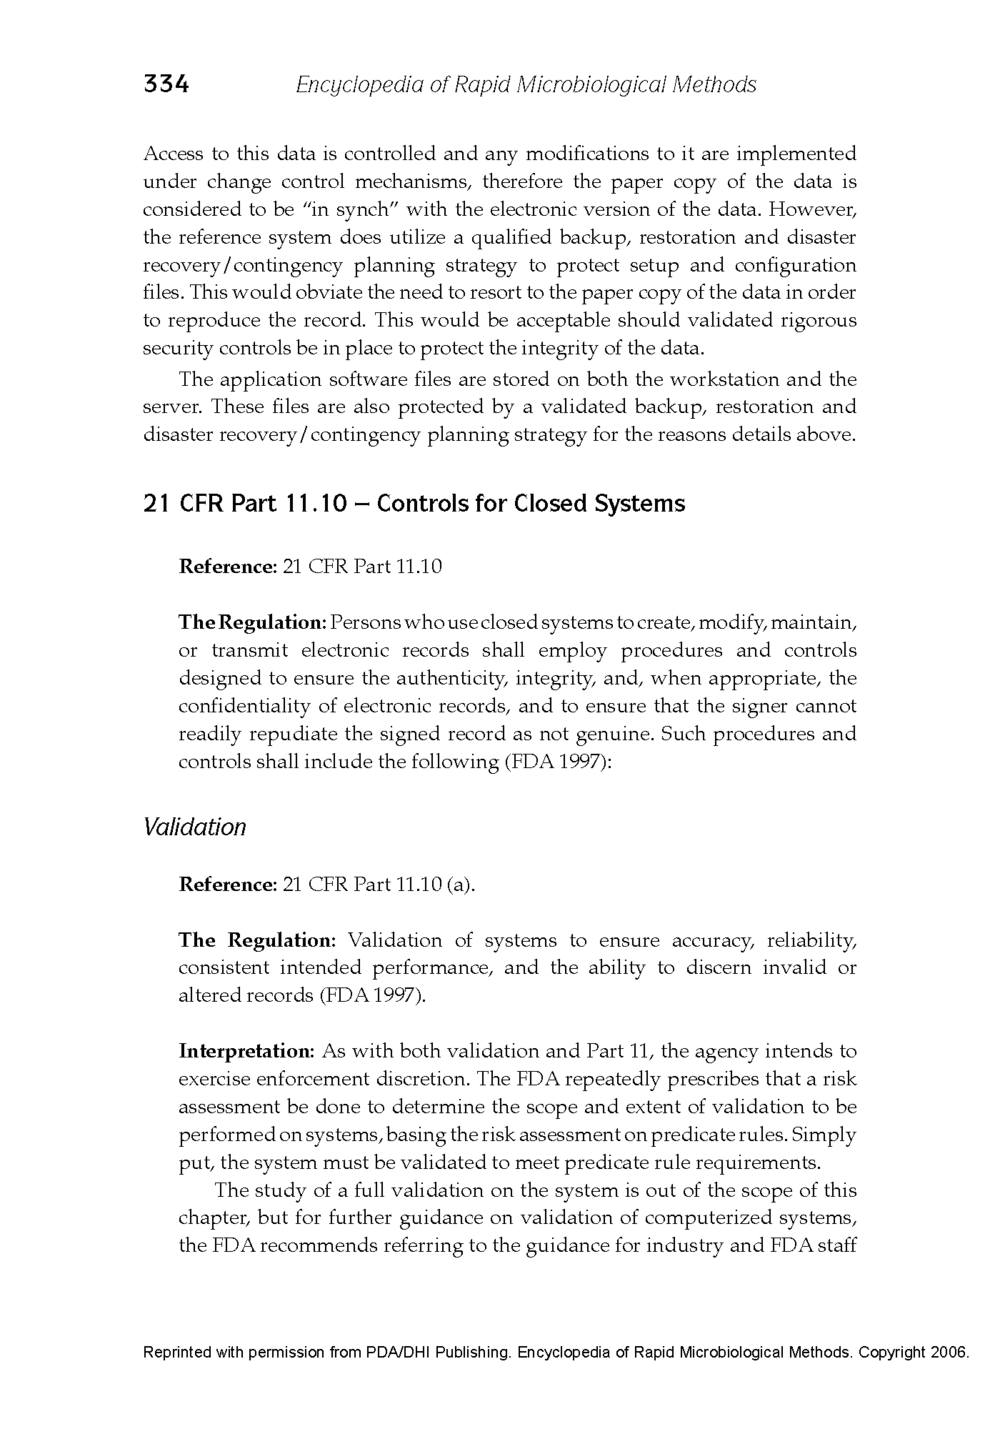 21 CFR Part 11 - Case Study Published in the Encyclopedia of Rapid Microbiological Methods - Volume 1, DHI Publishing_Page_12.png